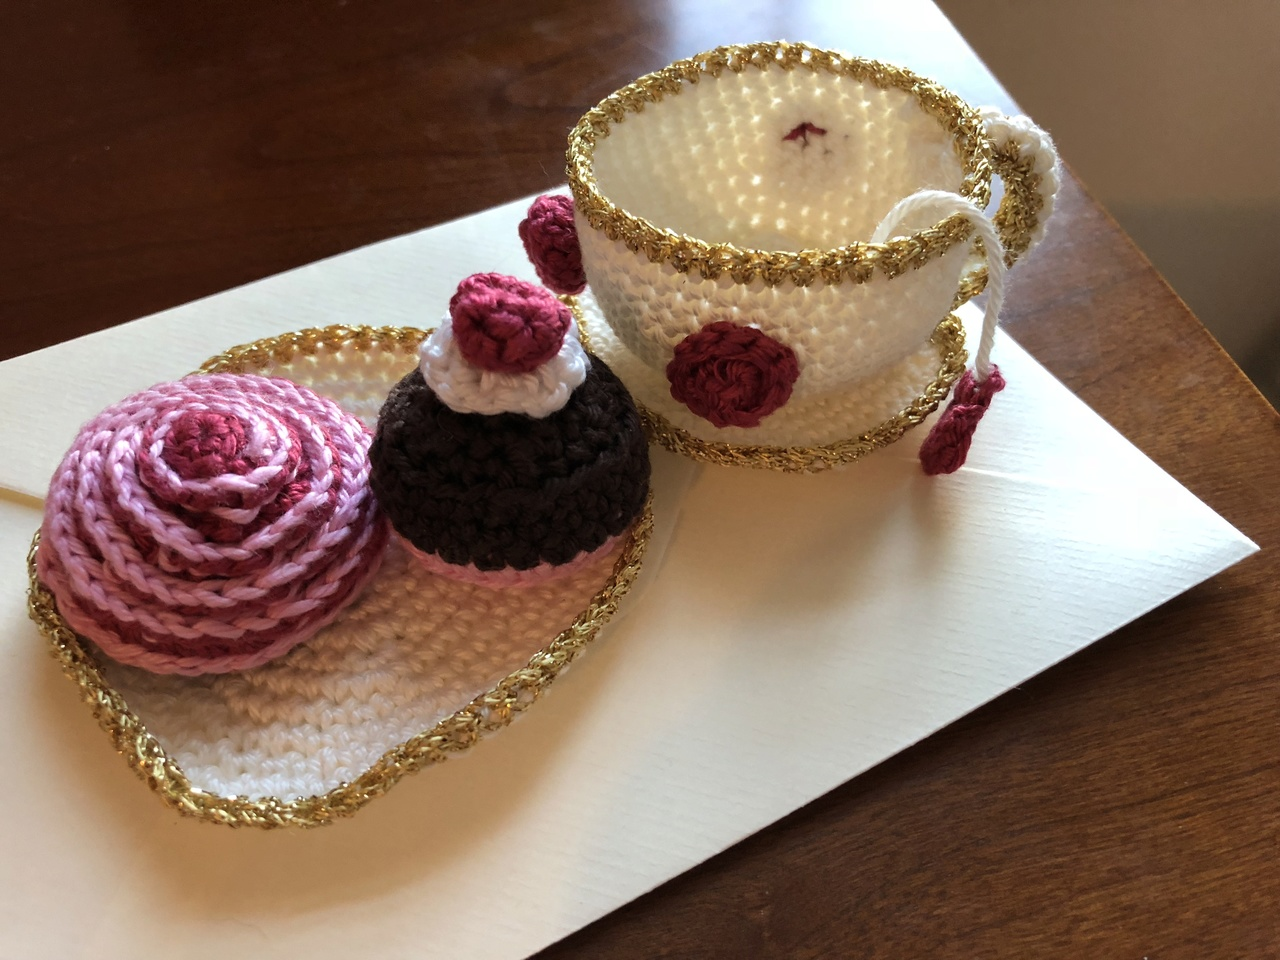 Hygge Tea Time - Updated with Beads-in-Action Photos Hygget11